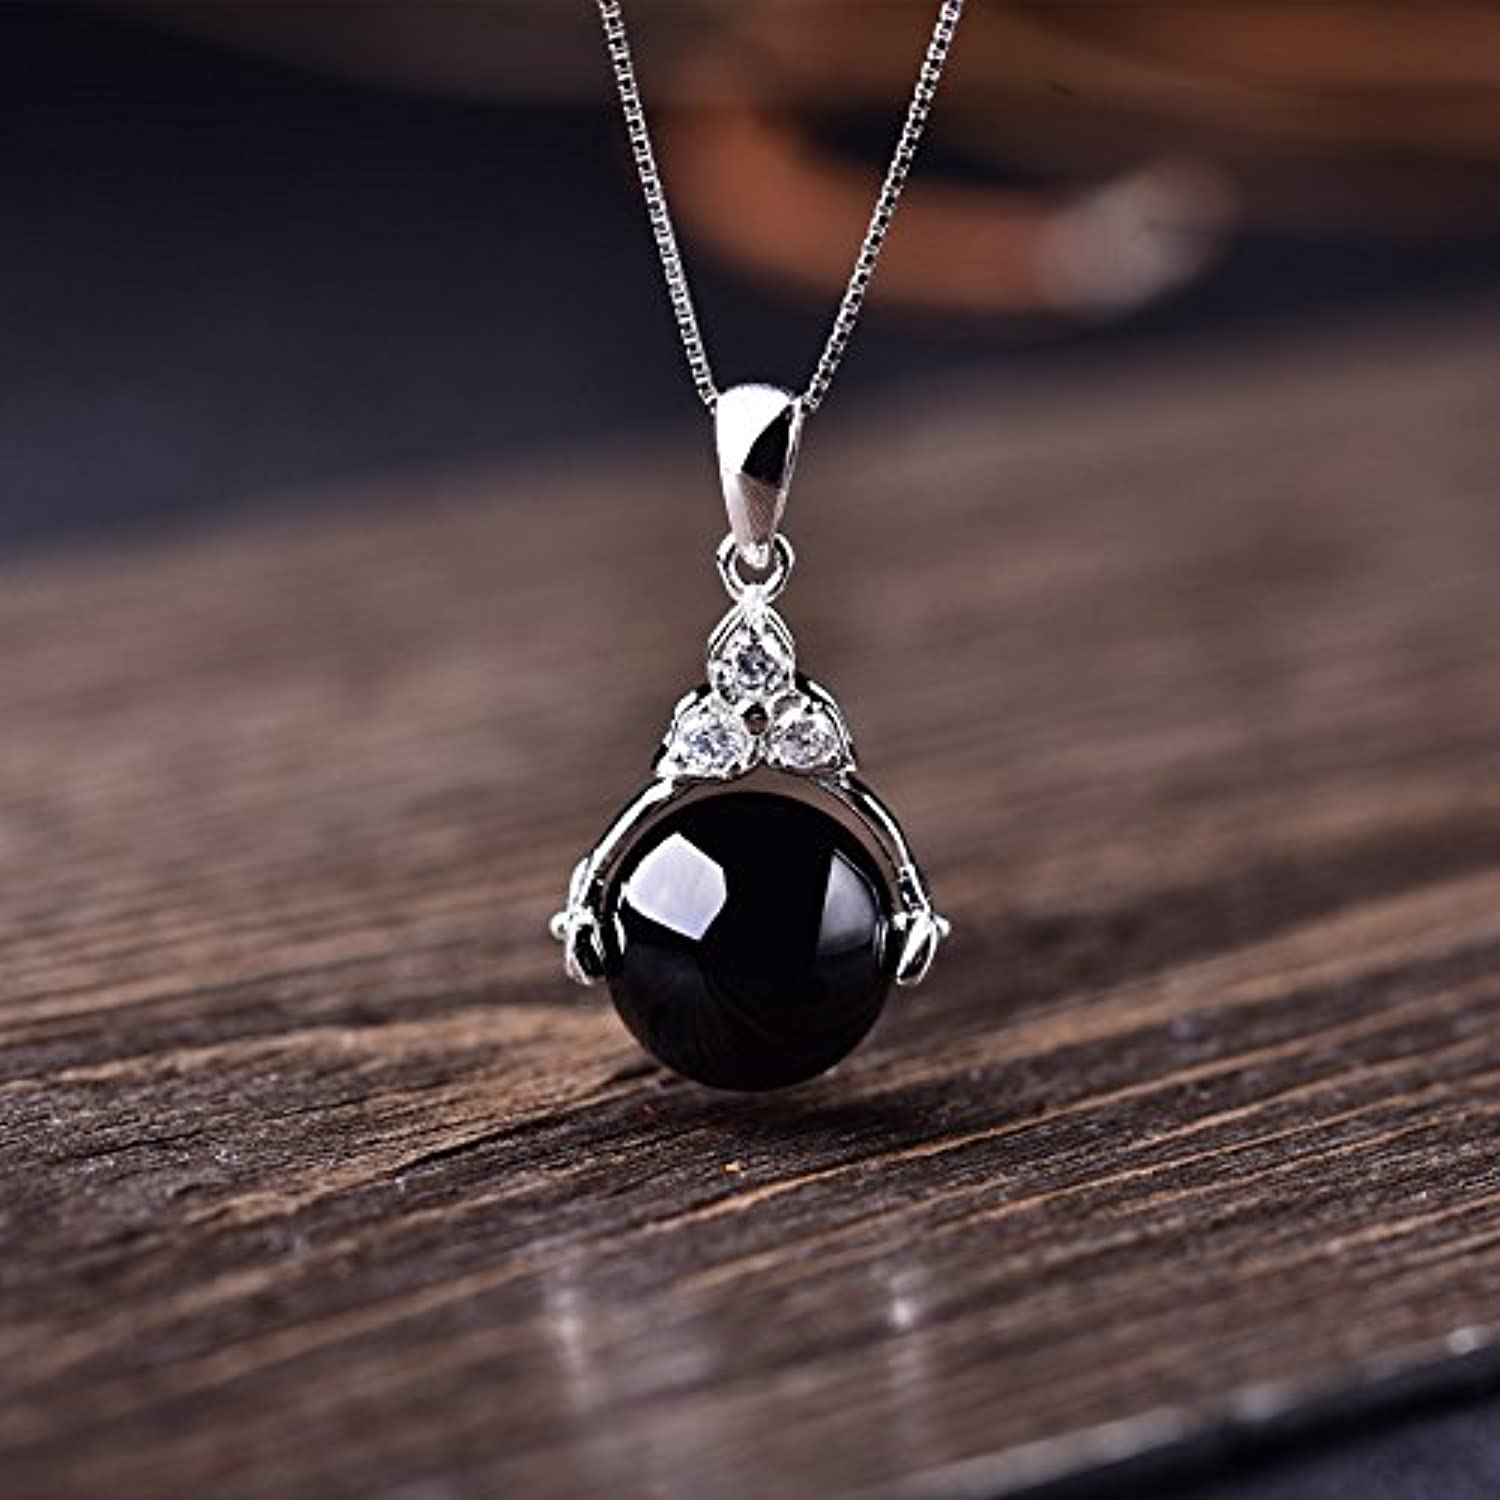 S925 Sterling Silver Black Onyx Gemstone Crystal Necklace Pendant Silver Chain Transfer Beads Necklace Pendant Jewelry Simple Elegant Collarbone